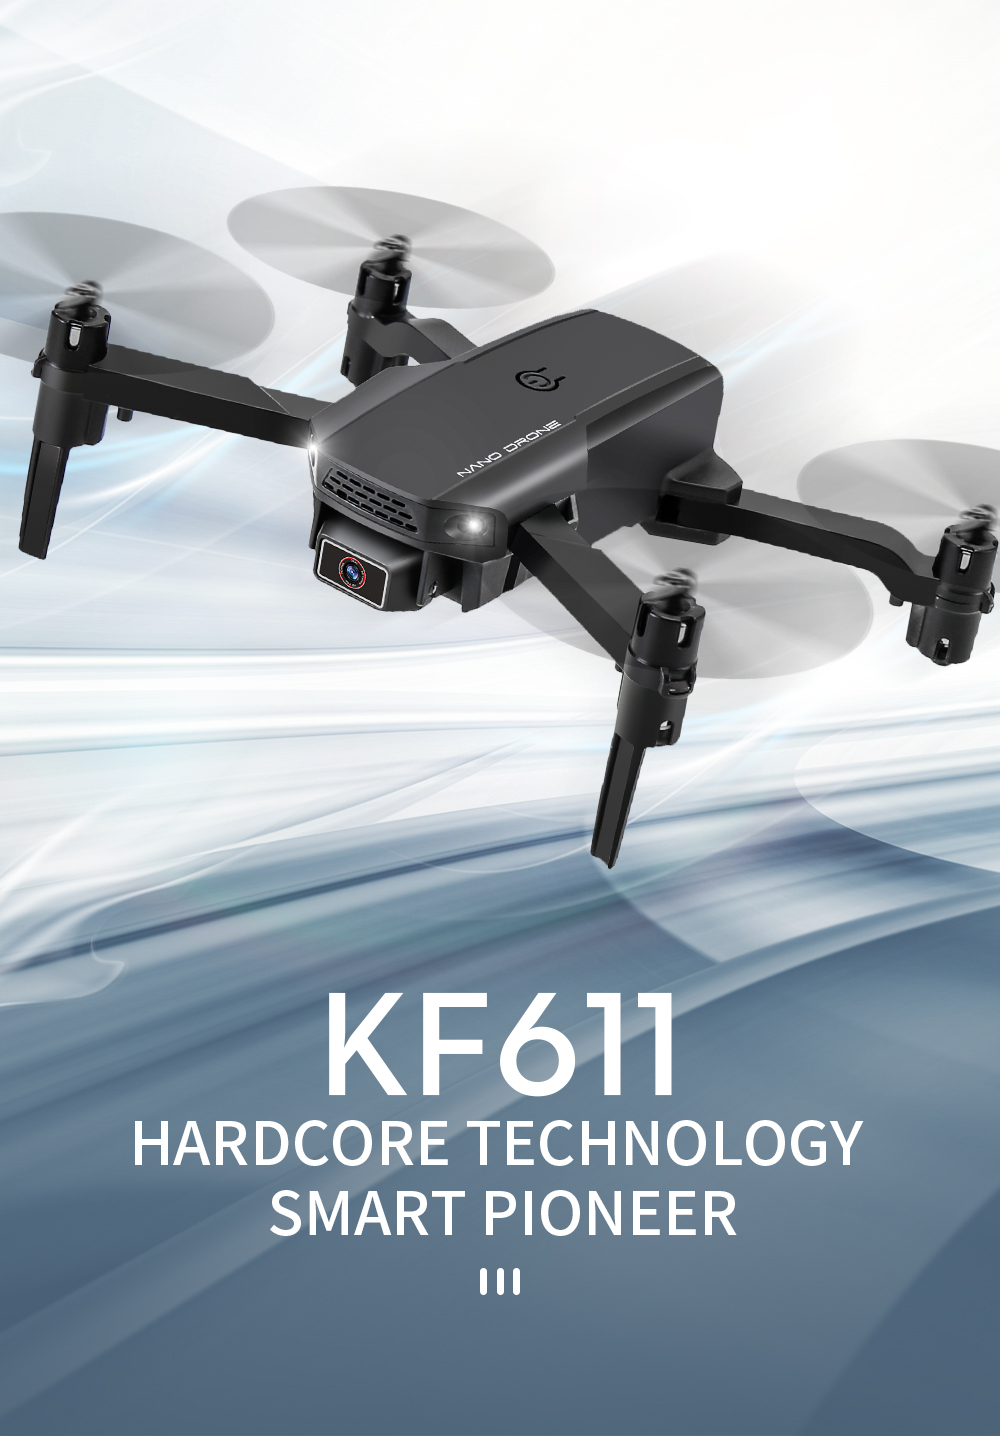 2020 NEW KF611 Drone Profession 4k HD Wide Angle Camera 1080P WiFi Fpv Drones Camera Quadcopter Keep Height Dron Toy